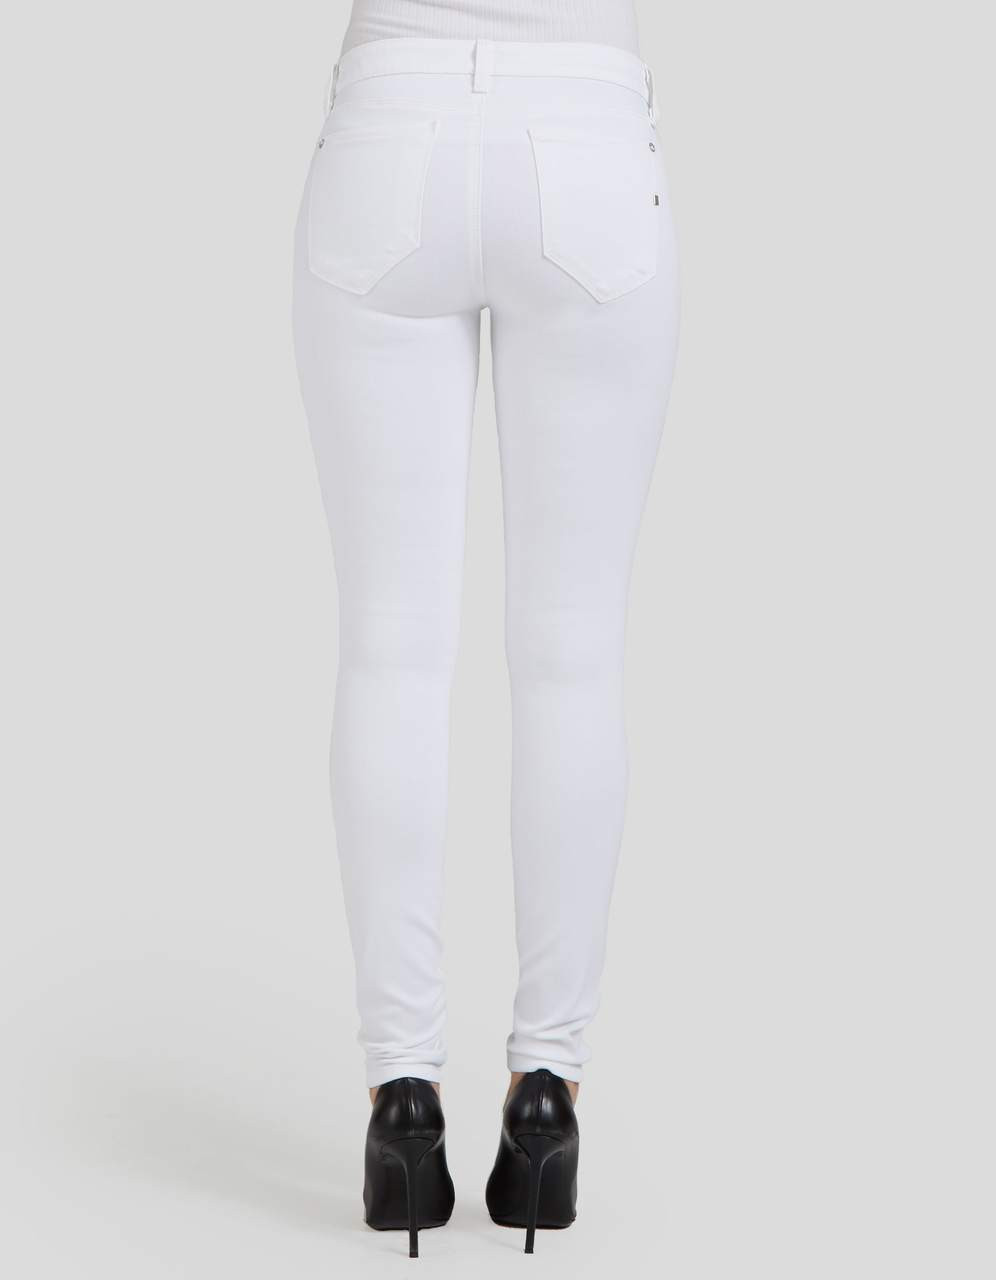 Optic White Jeans For Women | Skinny Fit Looks Great On All Body ...